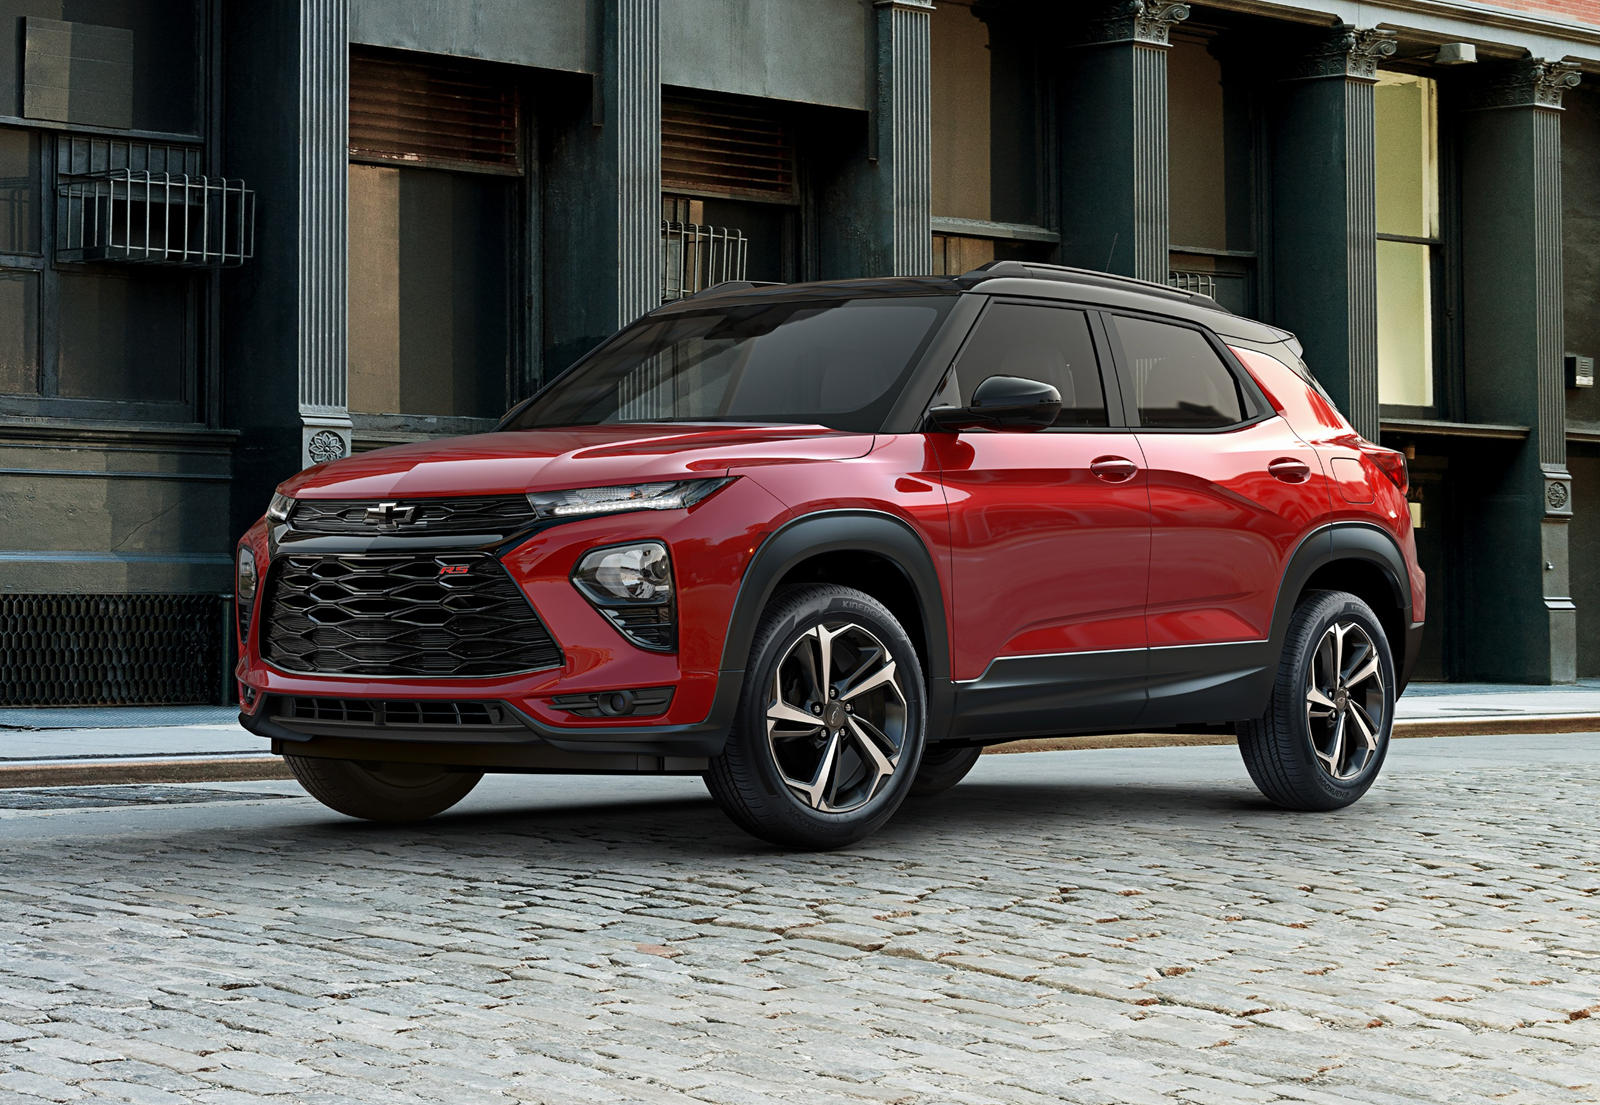 Redesign and Concept Chevrolet Trailblazer Ss 2021